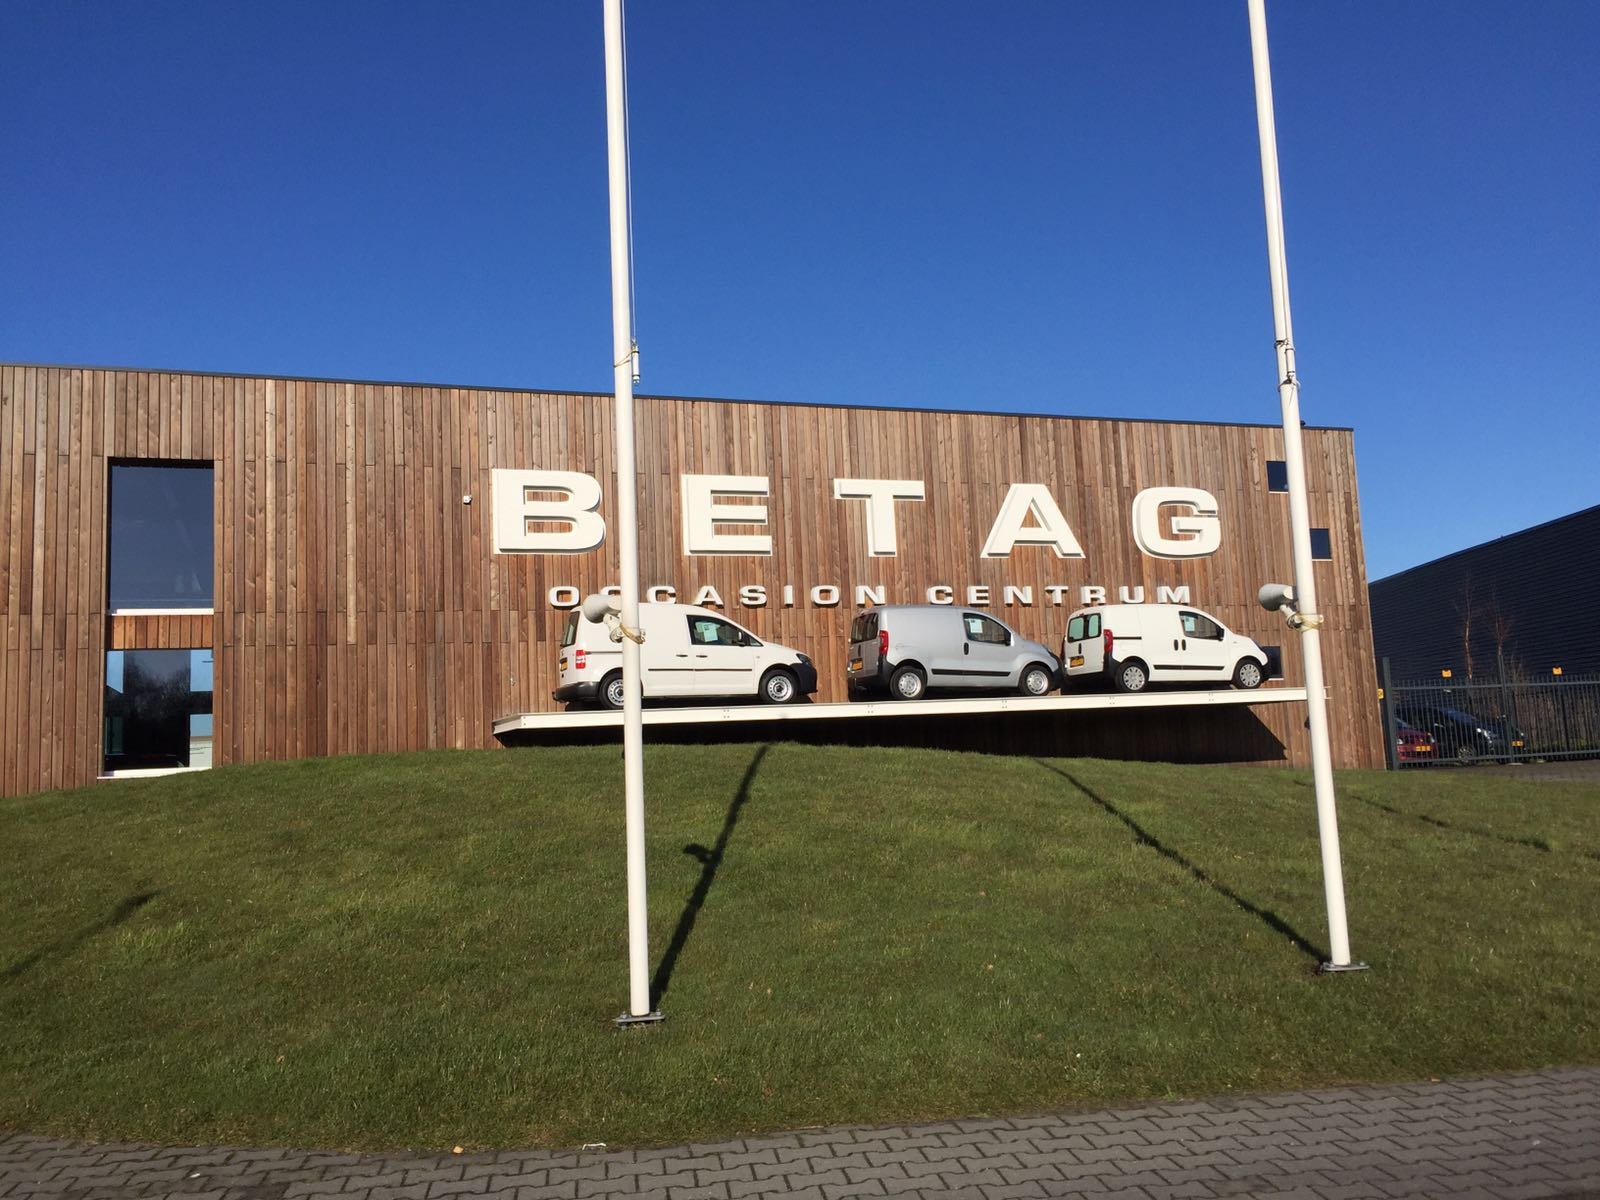 Betag